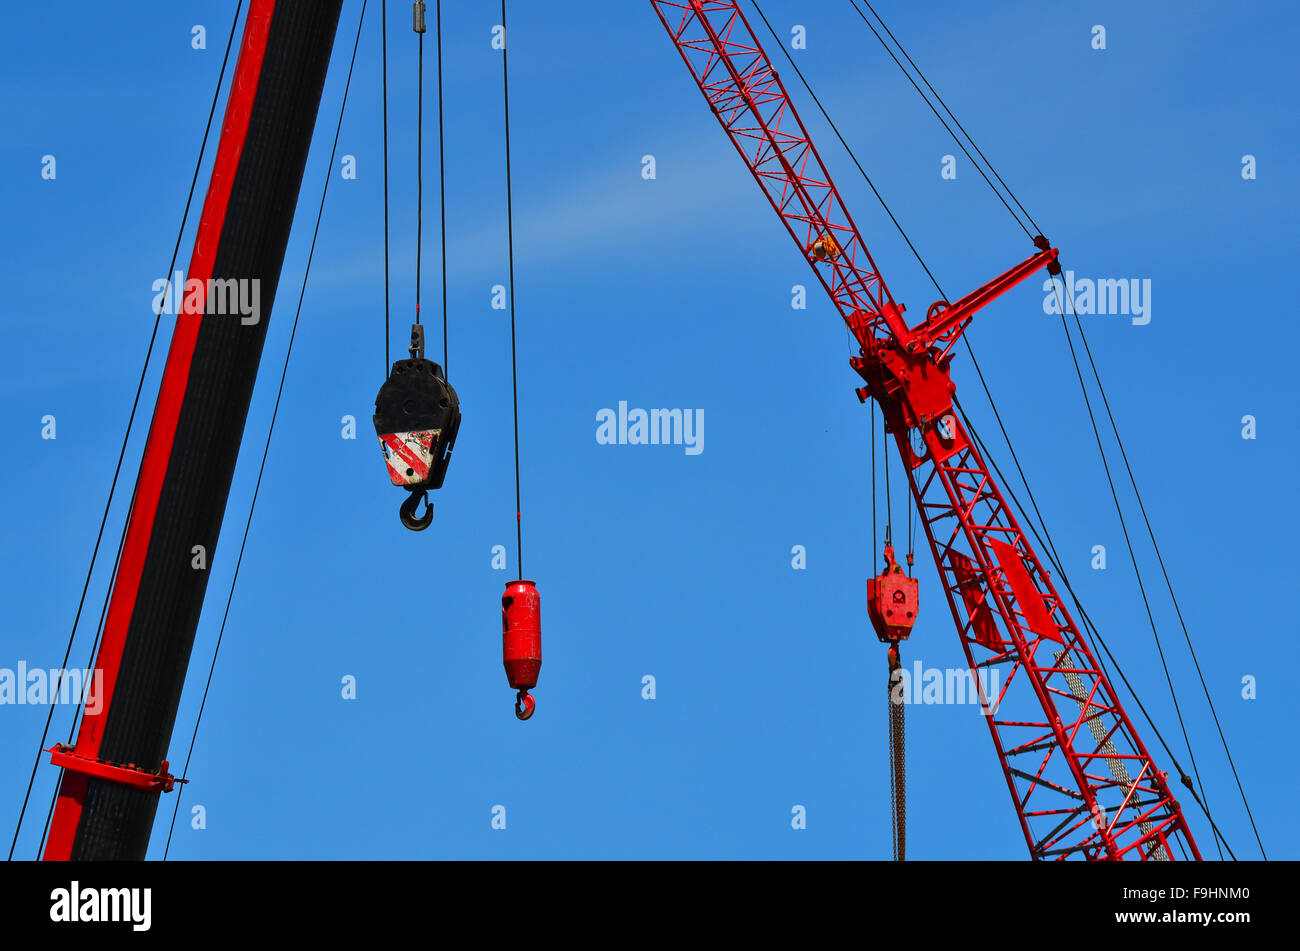 Red cranes in construction site against blue sky. Construction work concept - Stock Image